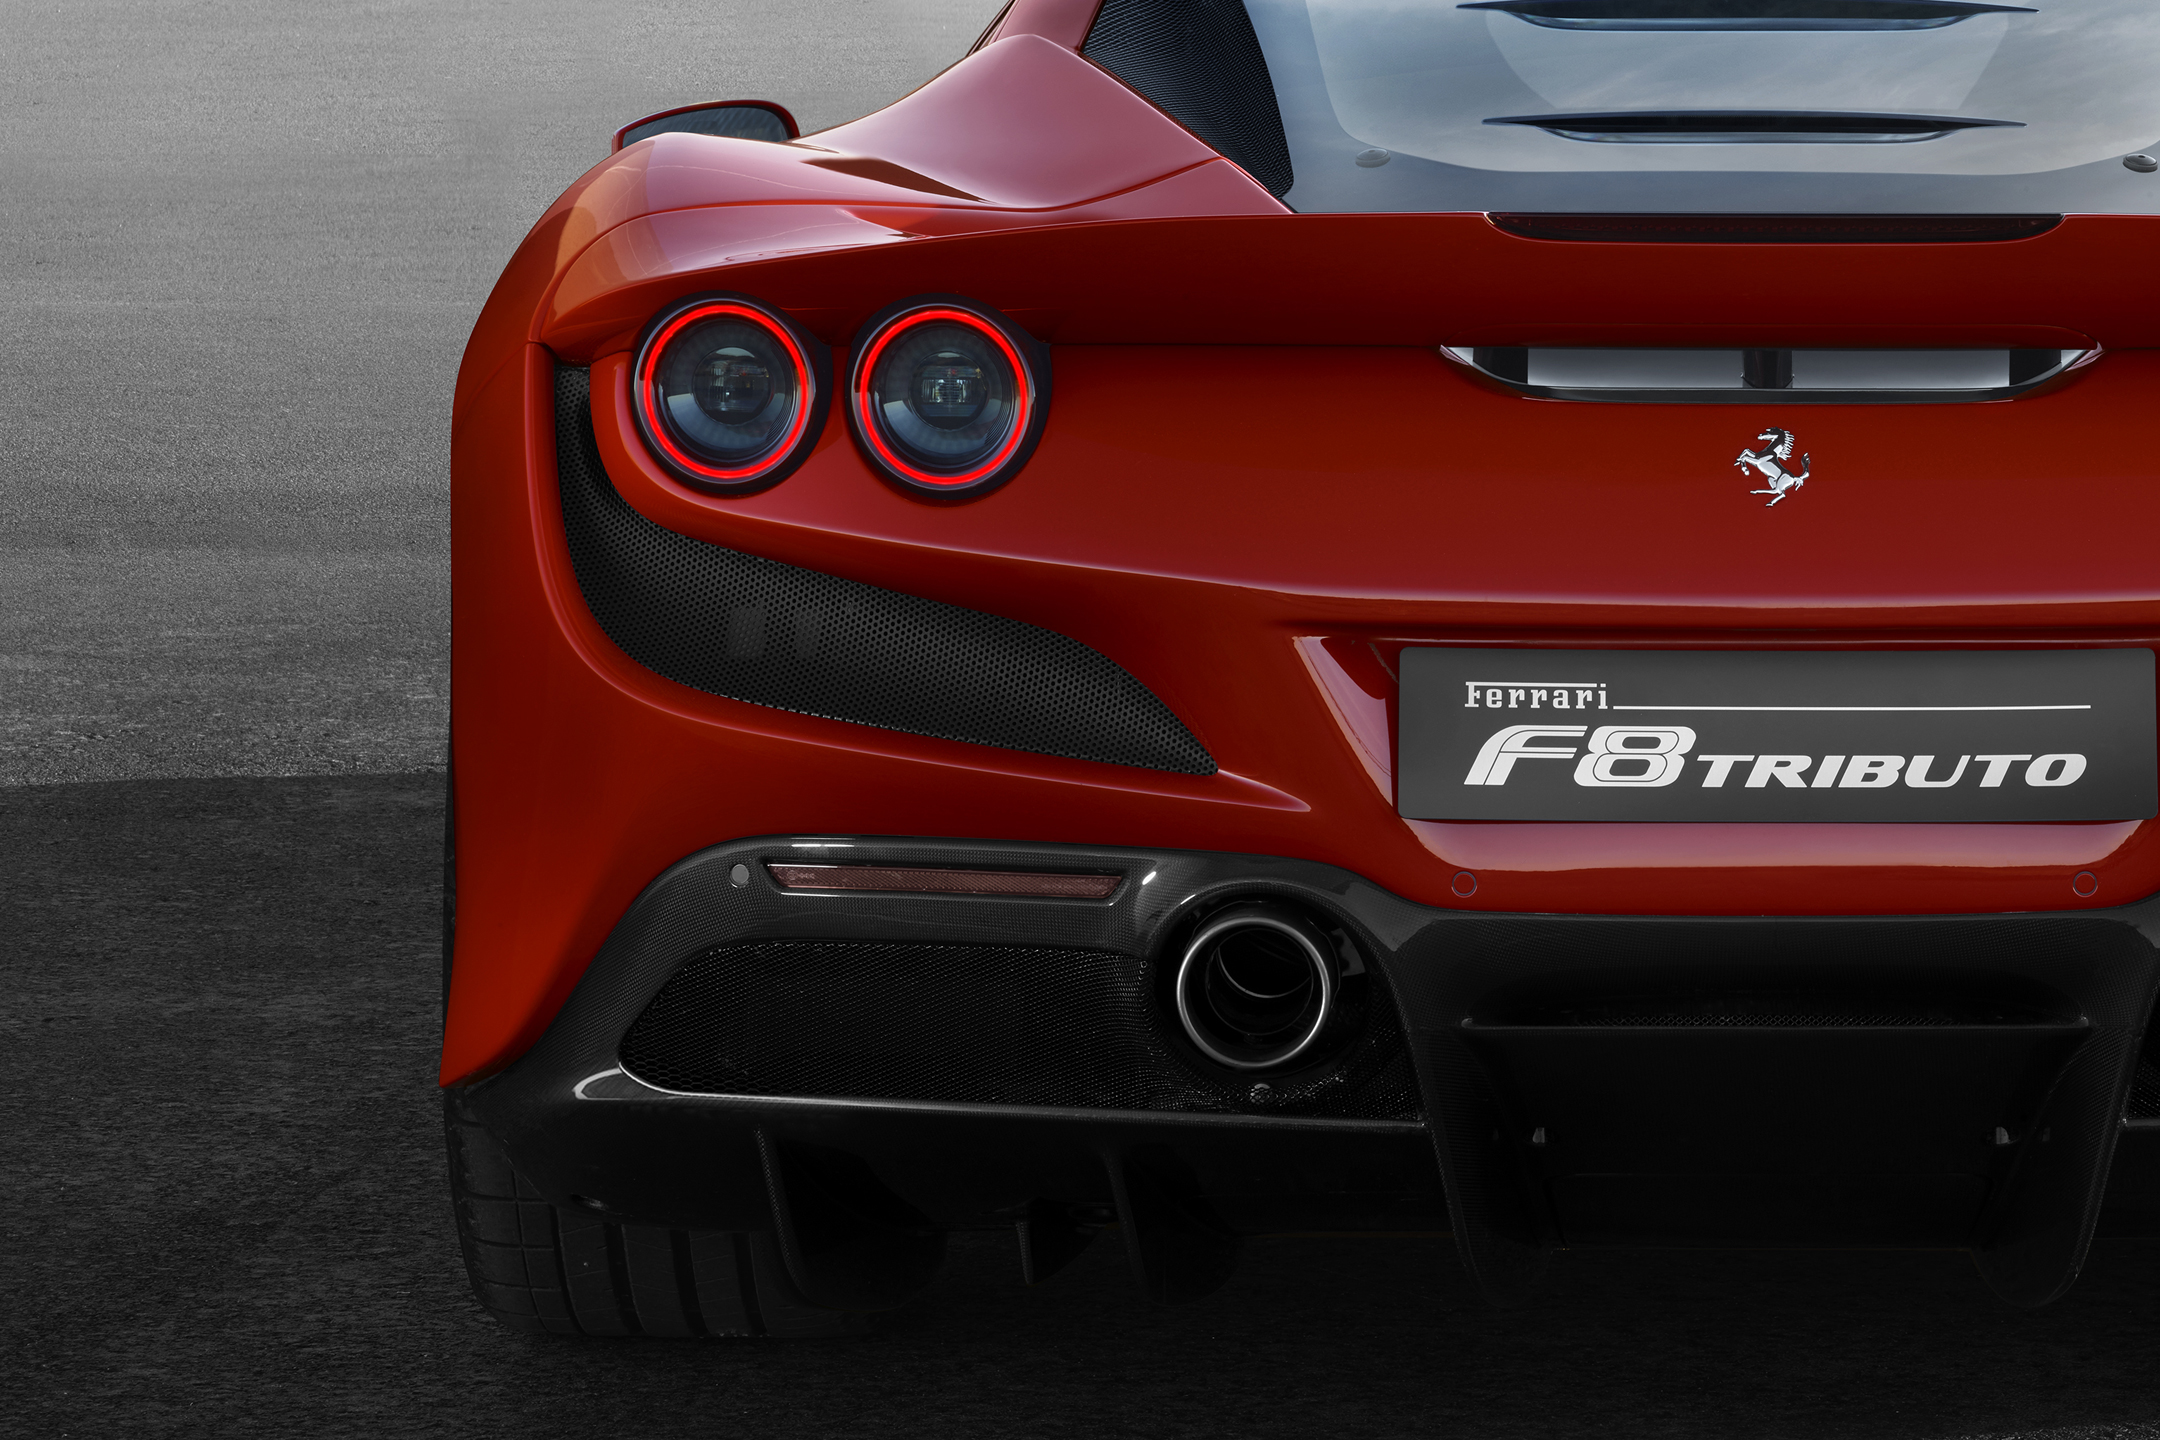 Ferrari F8 Tributo - 2019 - rear light